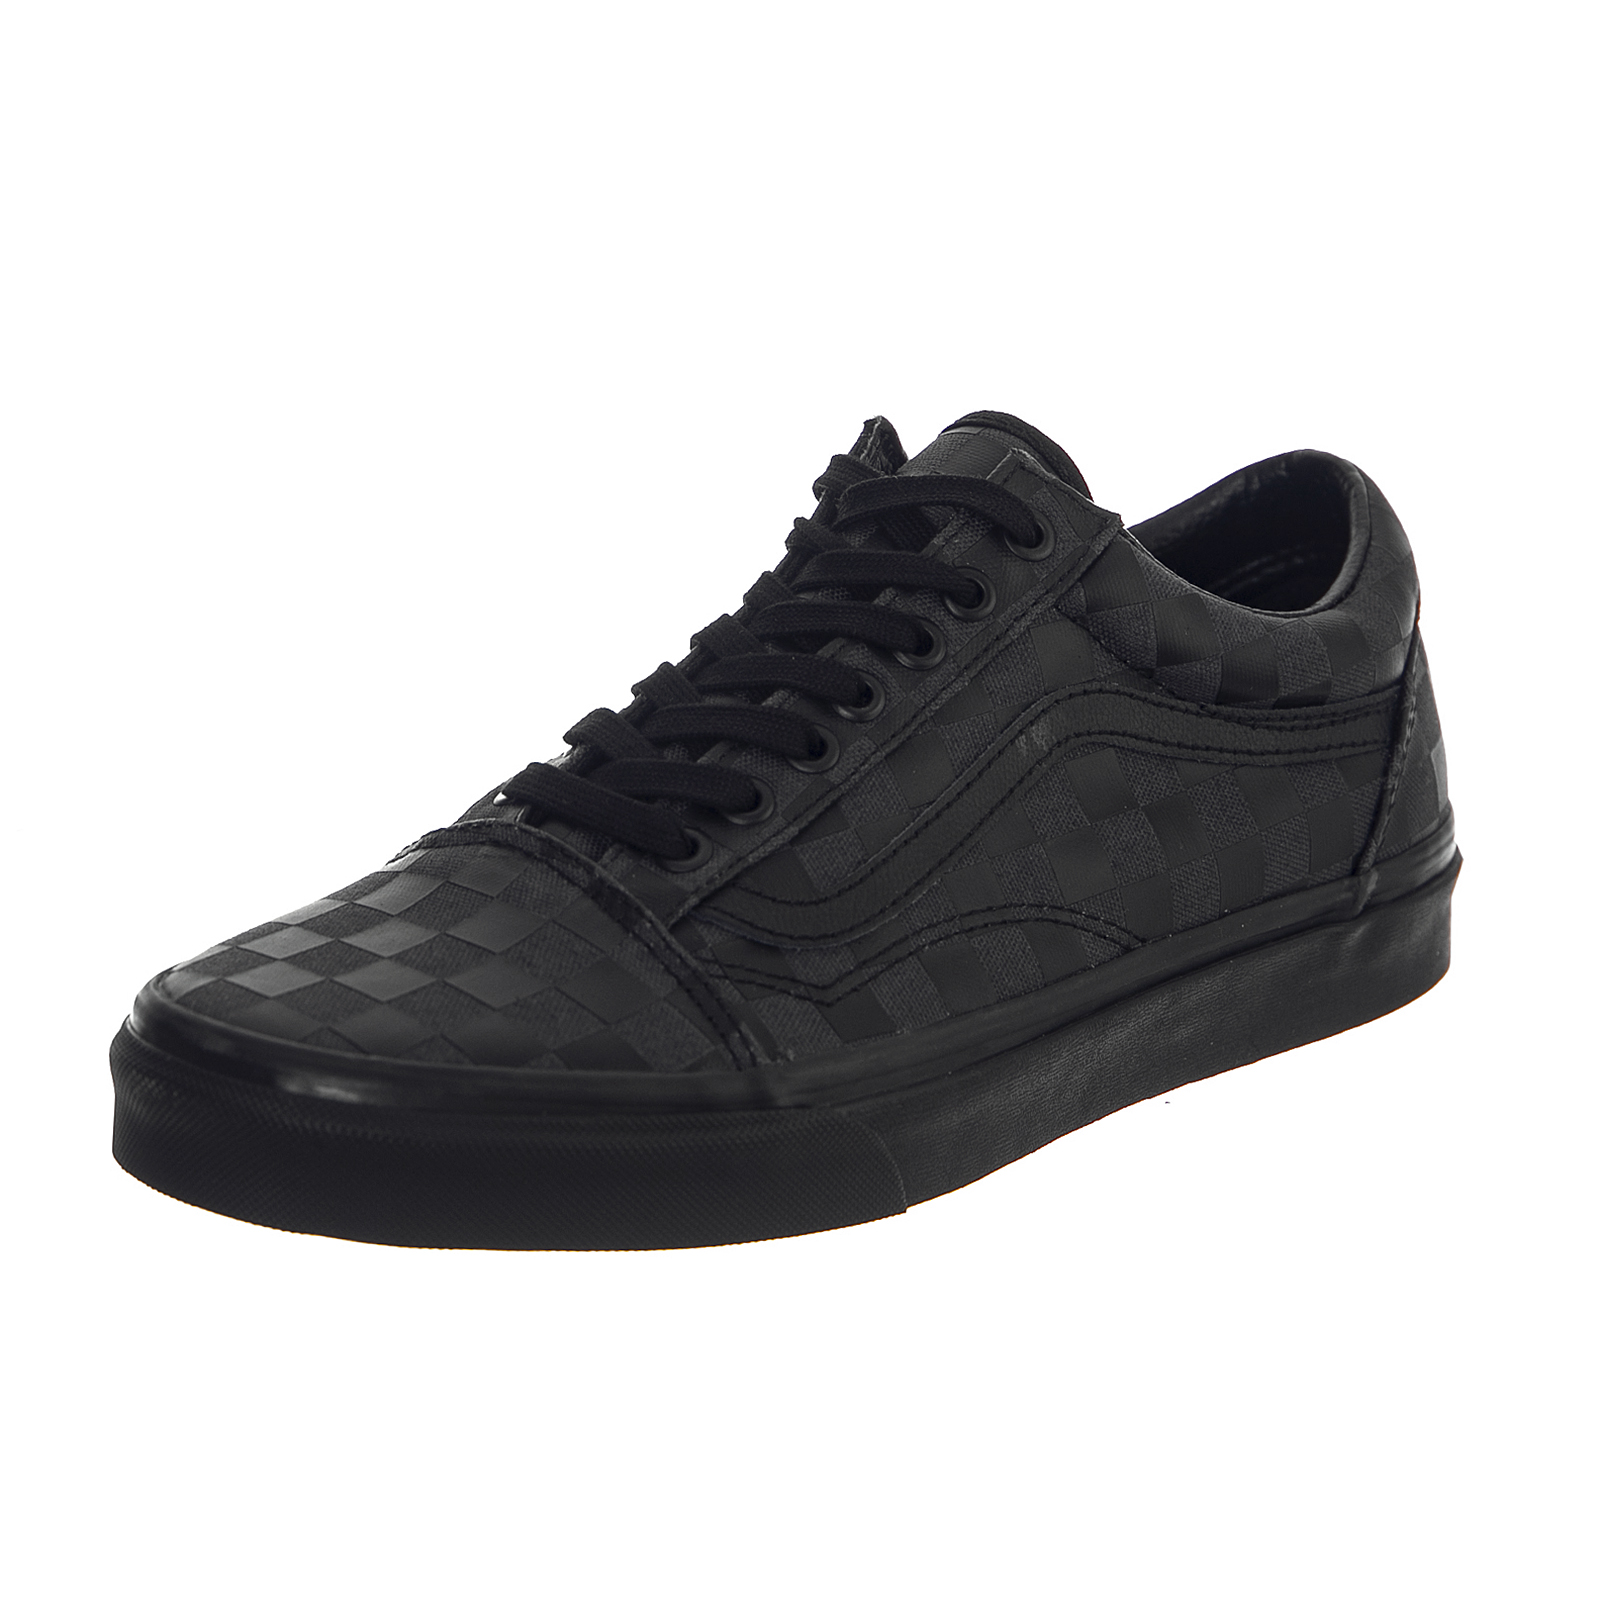 Vans Sneakers Ua Old Skool (High Density) Black Checkerboard Black ... 97bd33c2d